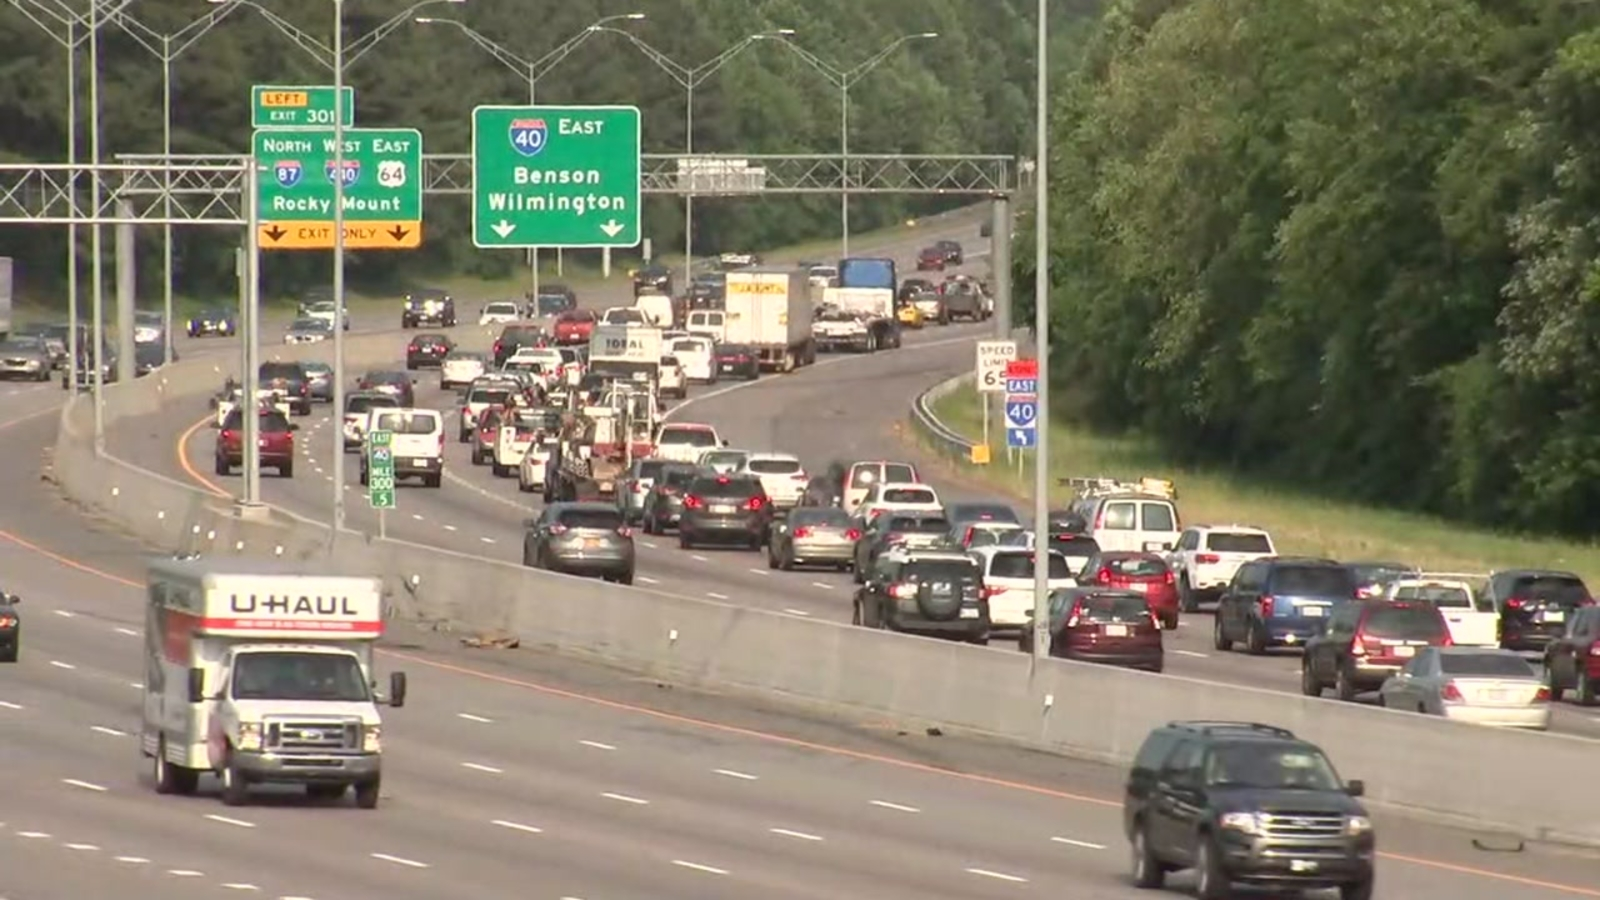 Memorial Day beach plans? Keep an eye out for traffic